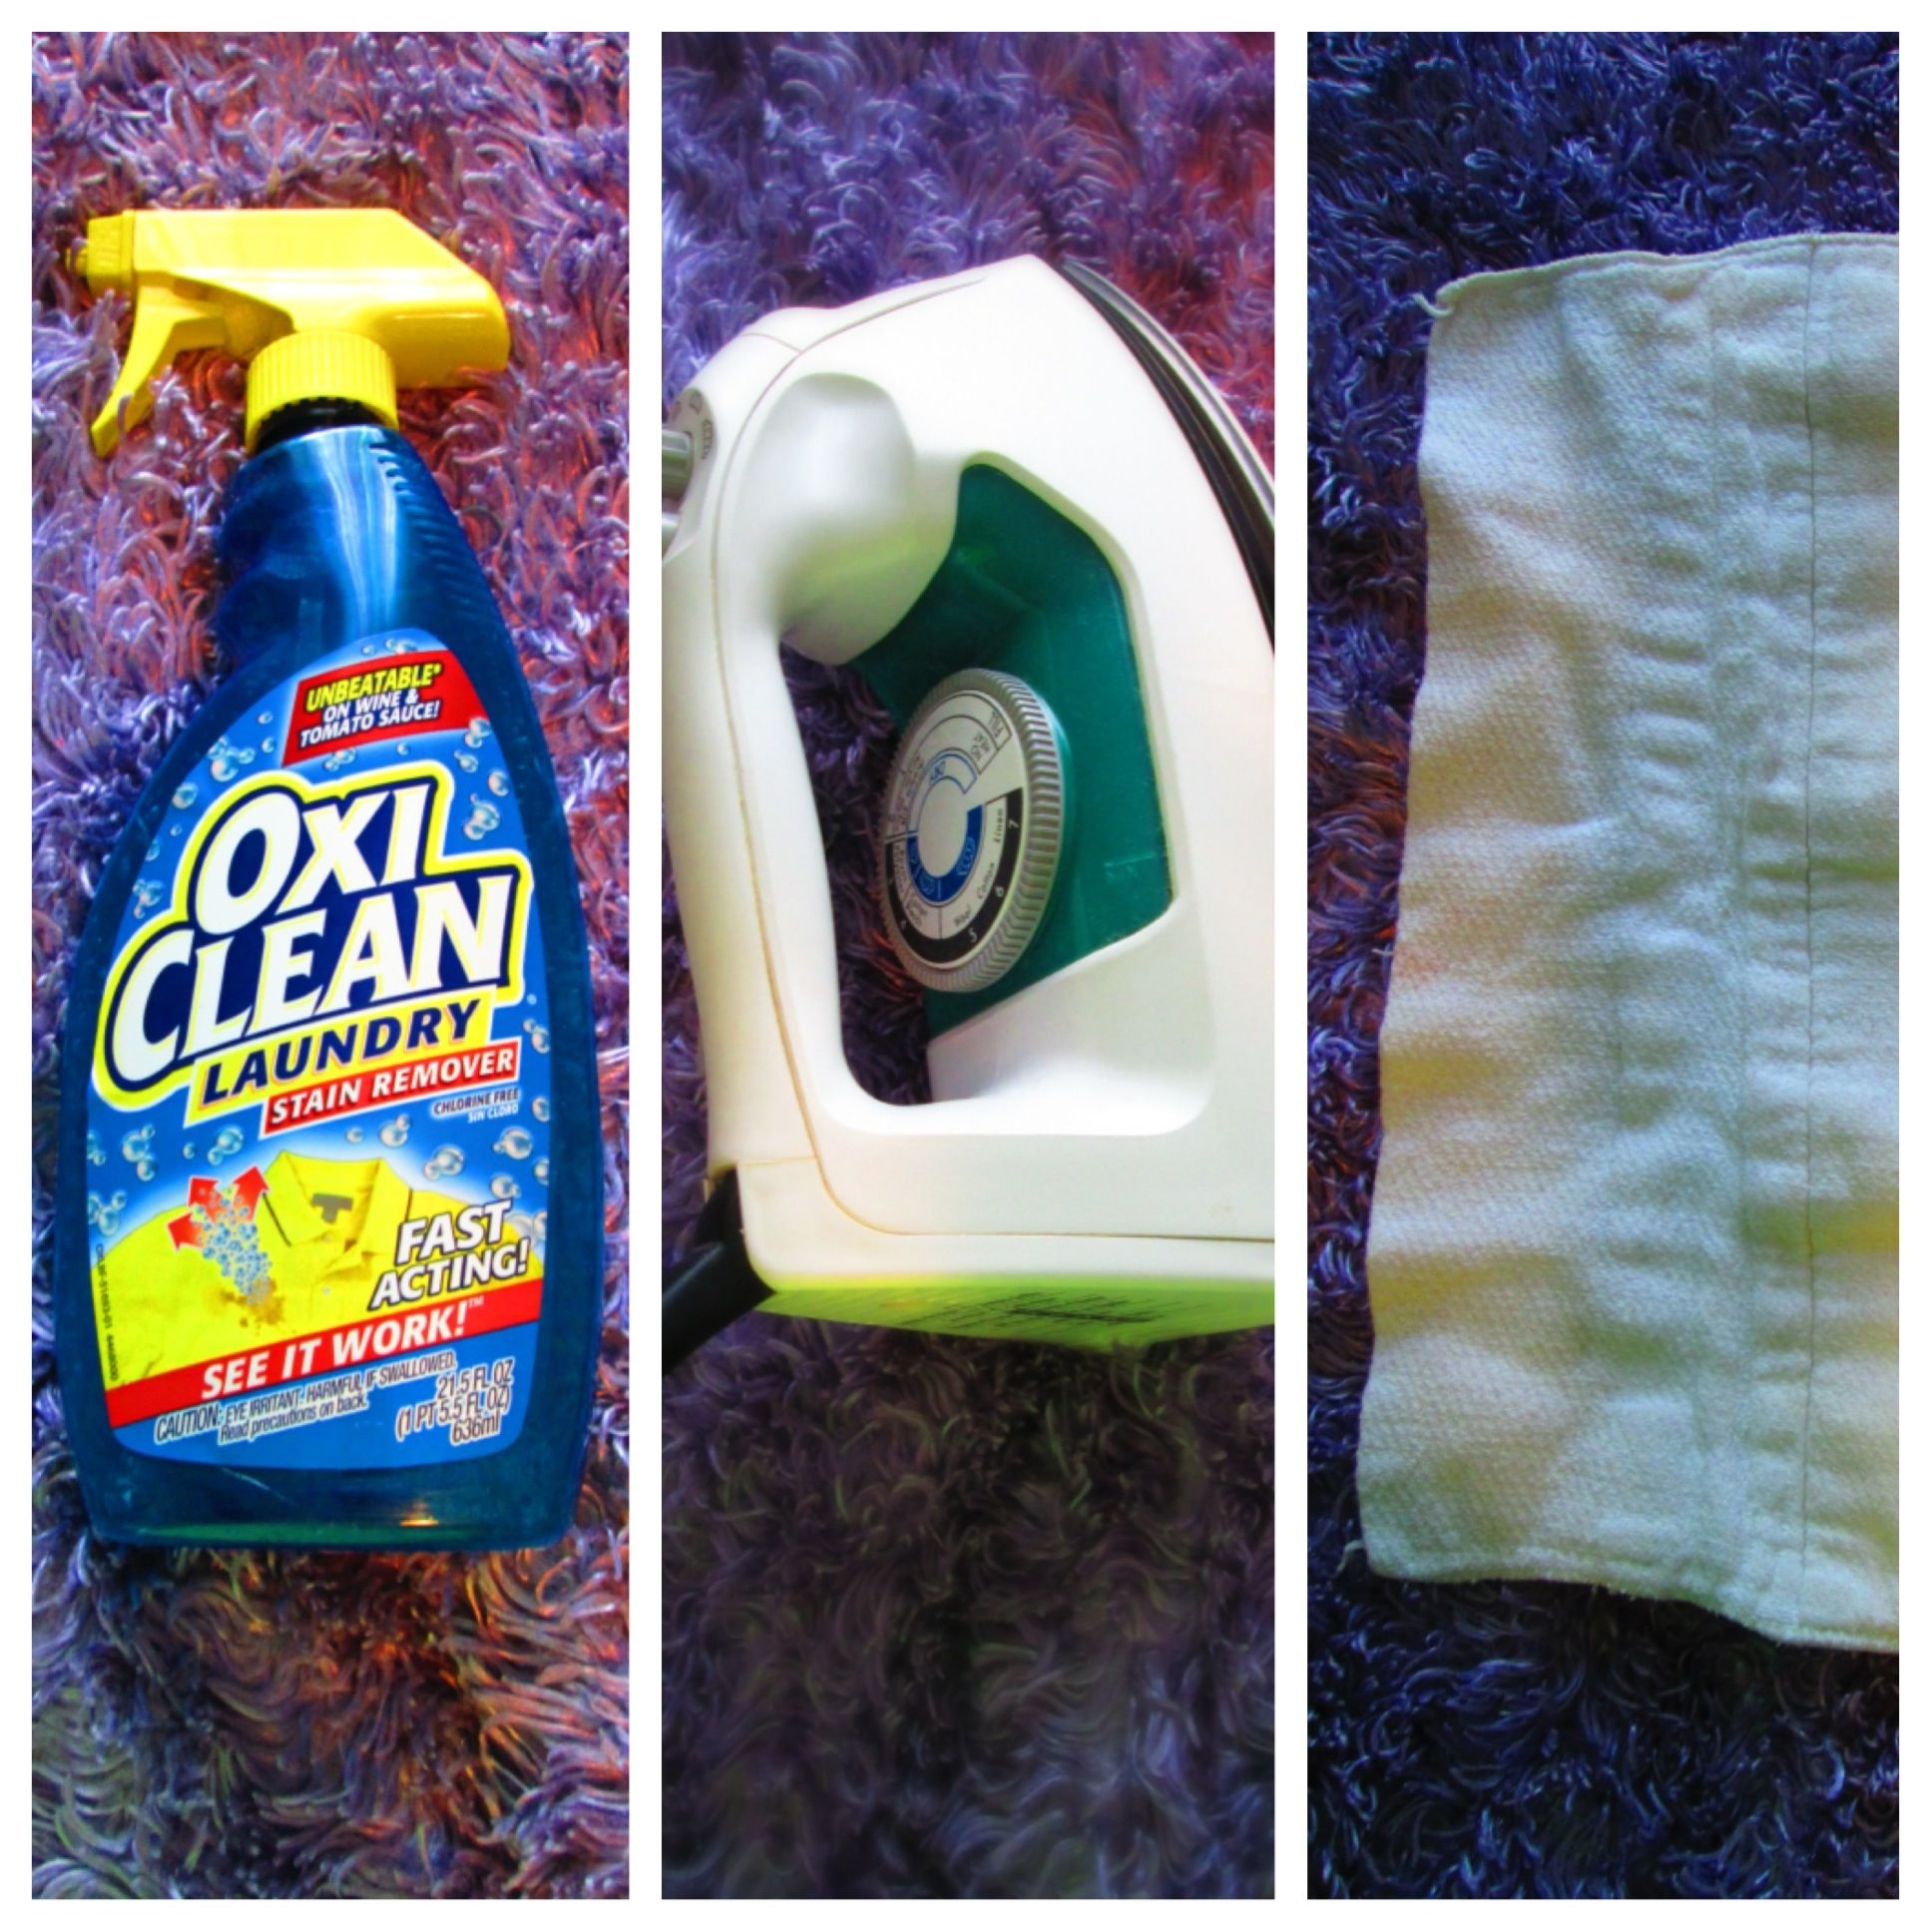 How To Remove Stains From A Carpet Recipe Cleaning Laundry Stain Remover Cleaning Hacks